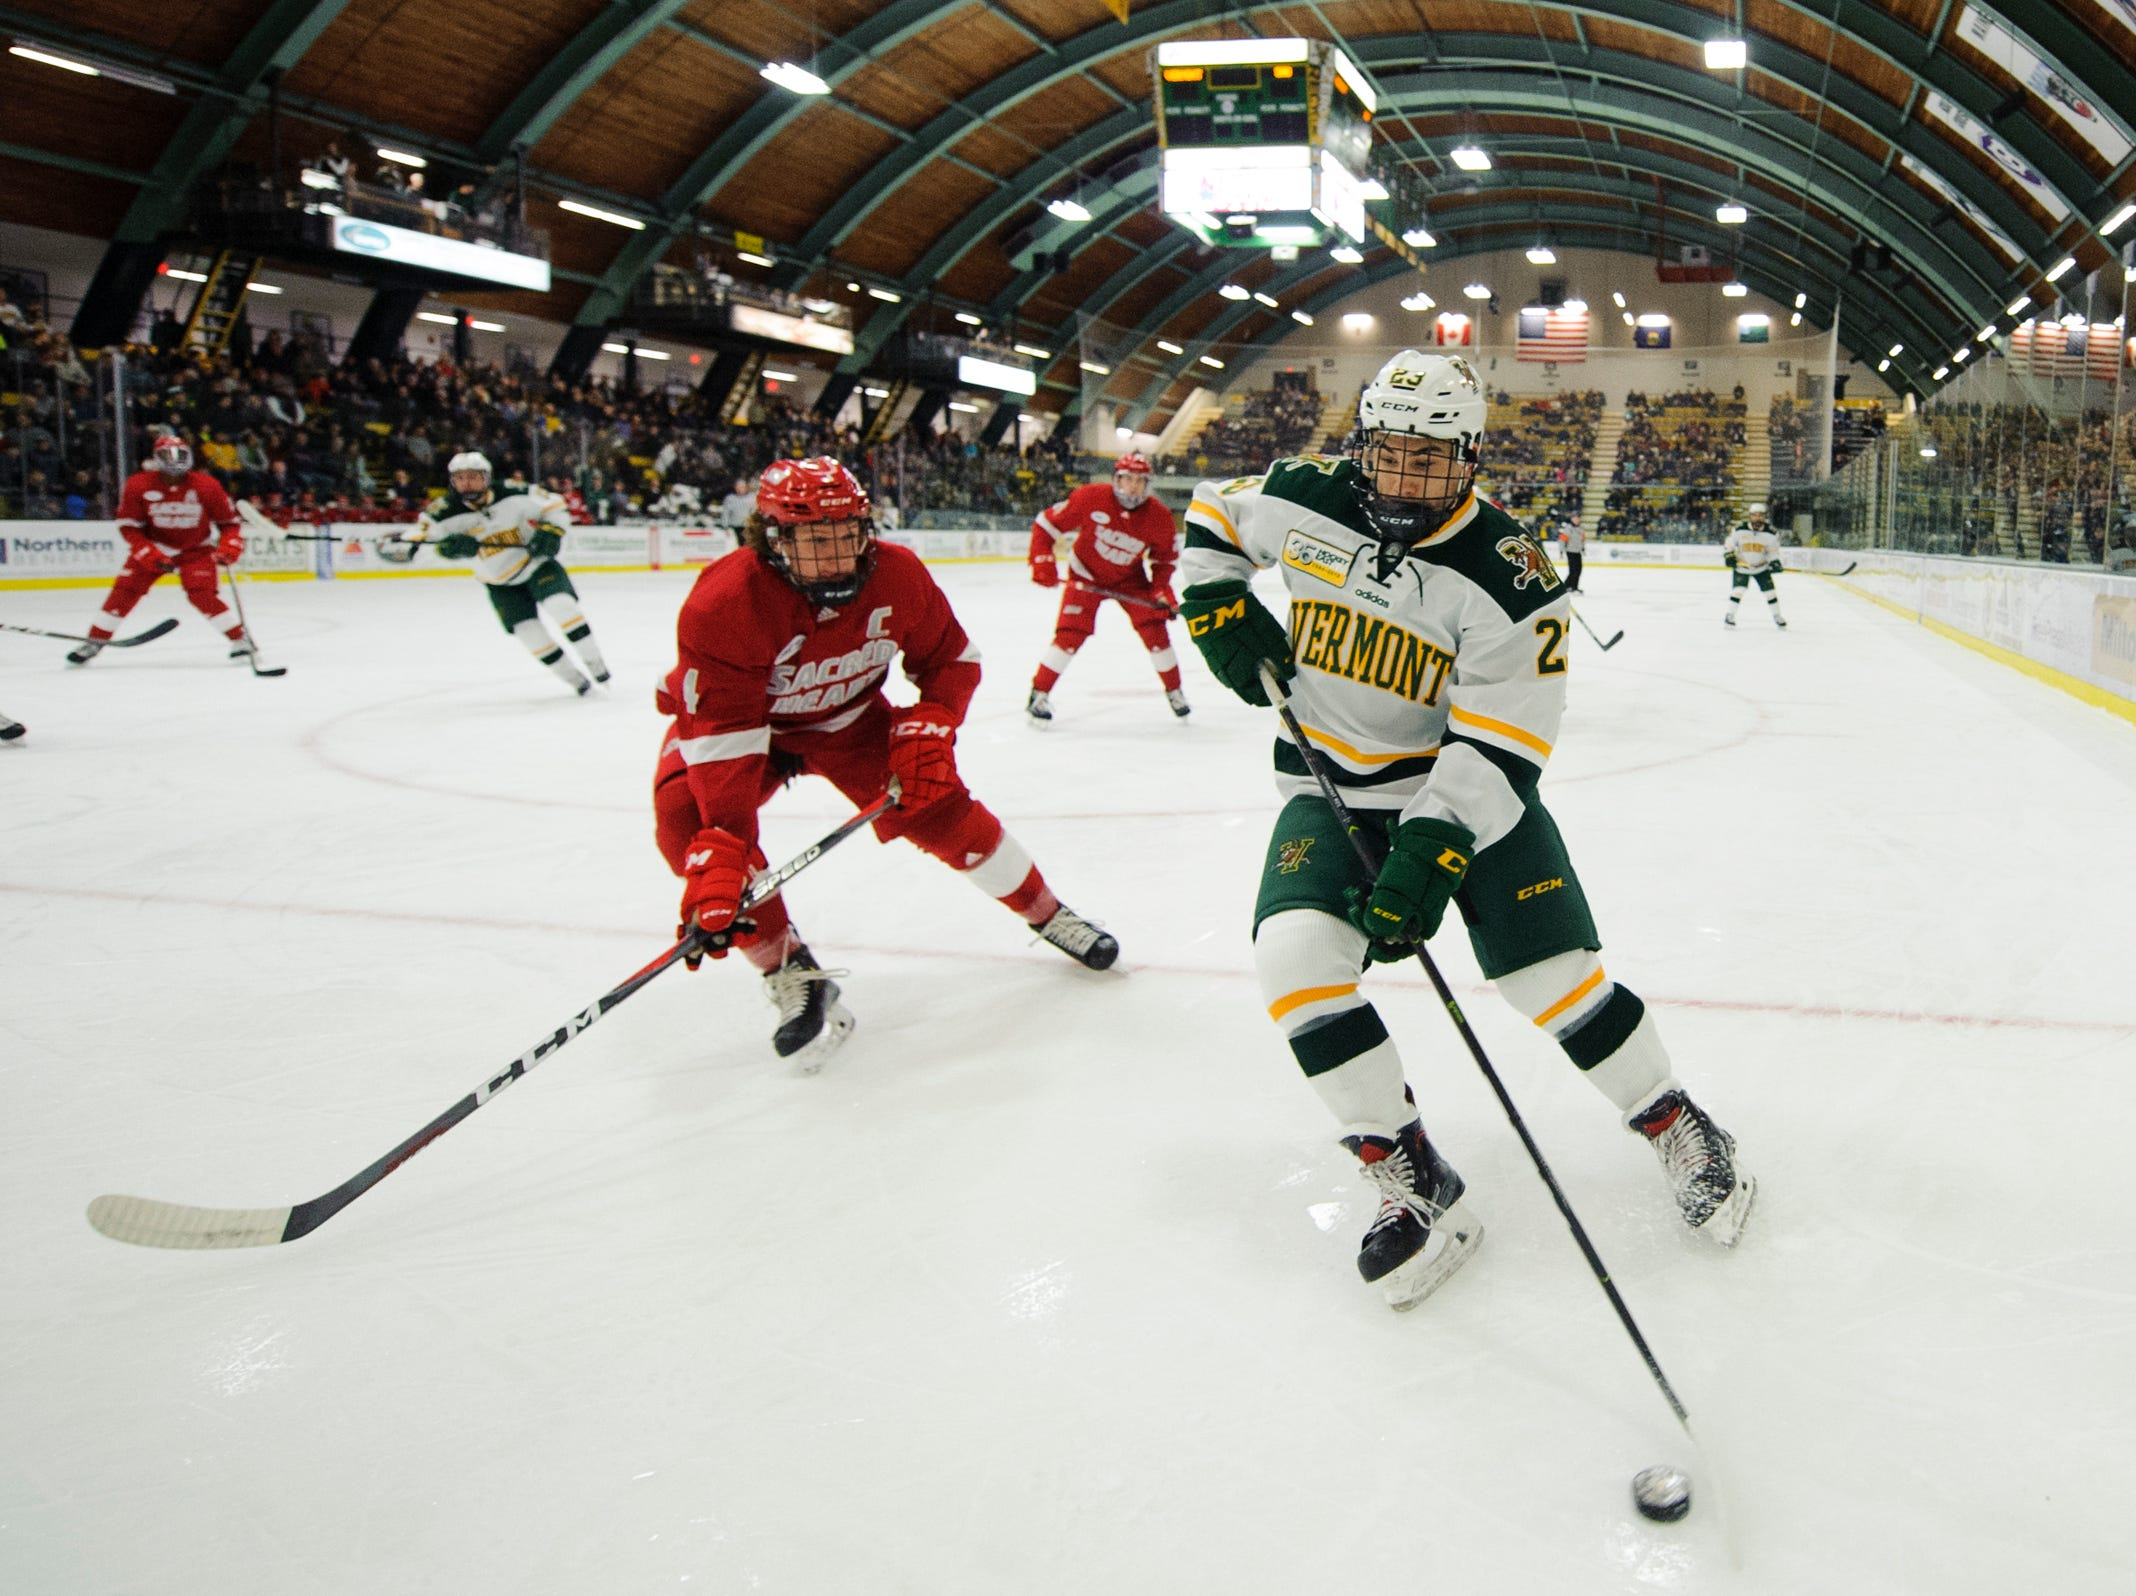 Vermont forward Max Kaufman (23) plays the puck in the corner during the men's hockey game between the Sacred Heart Pioneers and the Vermont Catamounts at Gutterson Field House on Friday night January 4, 2019 in Burlington.